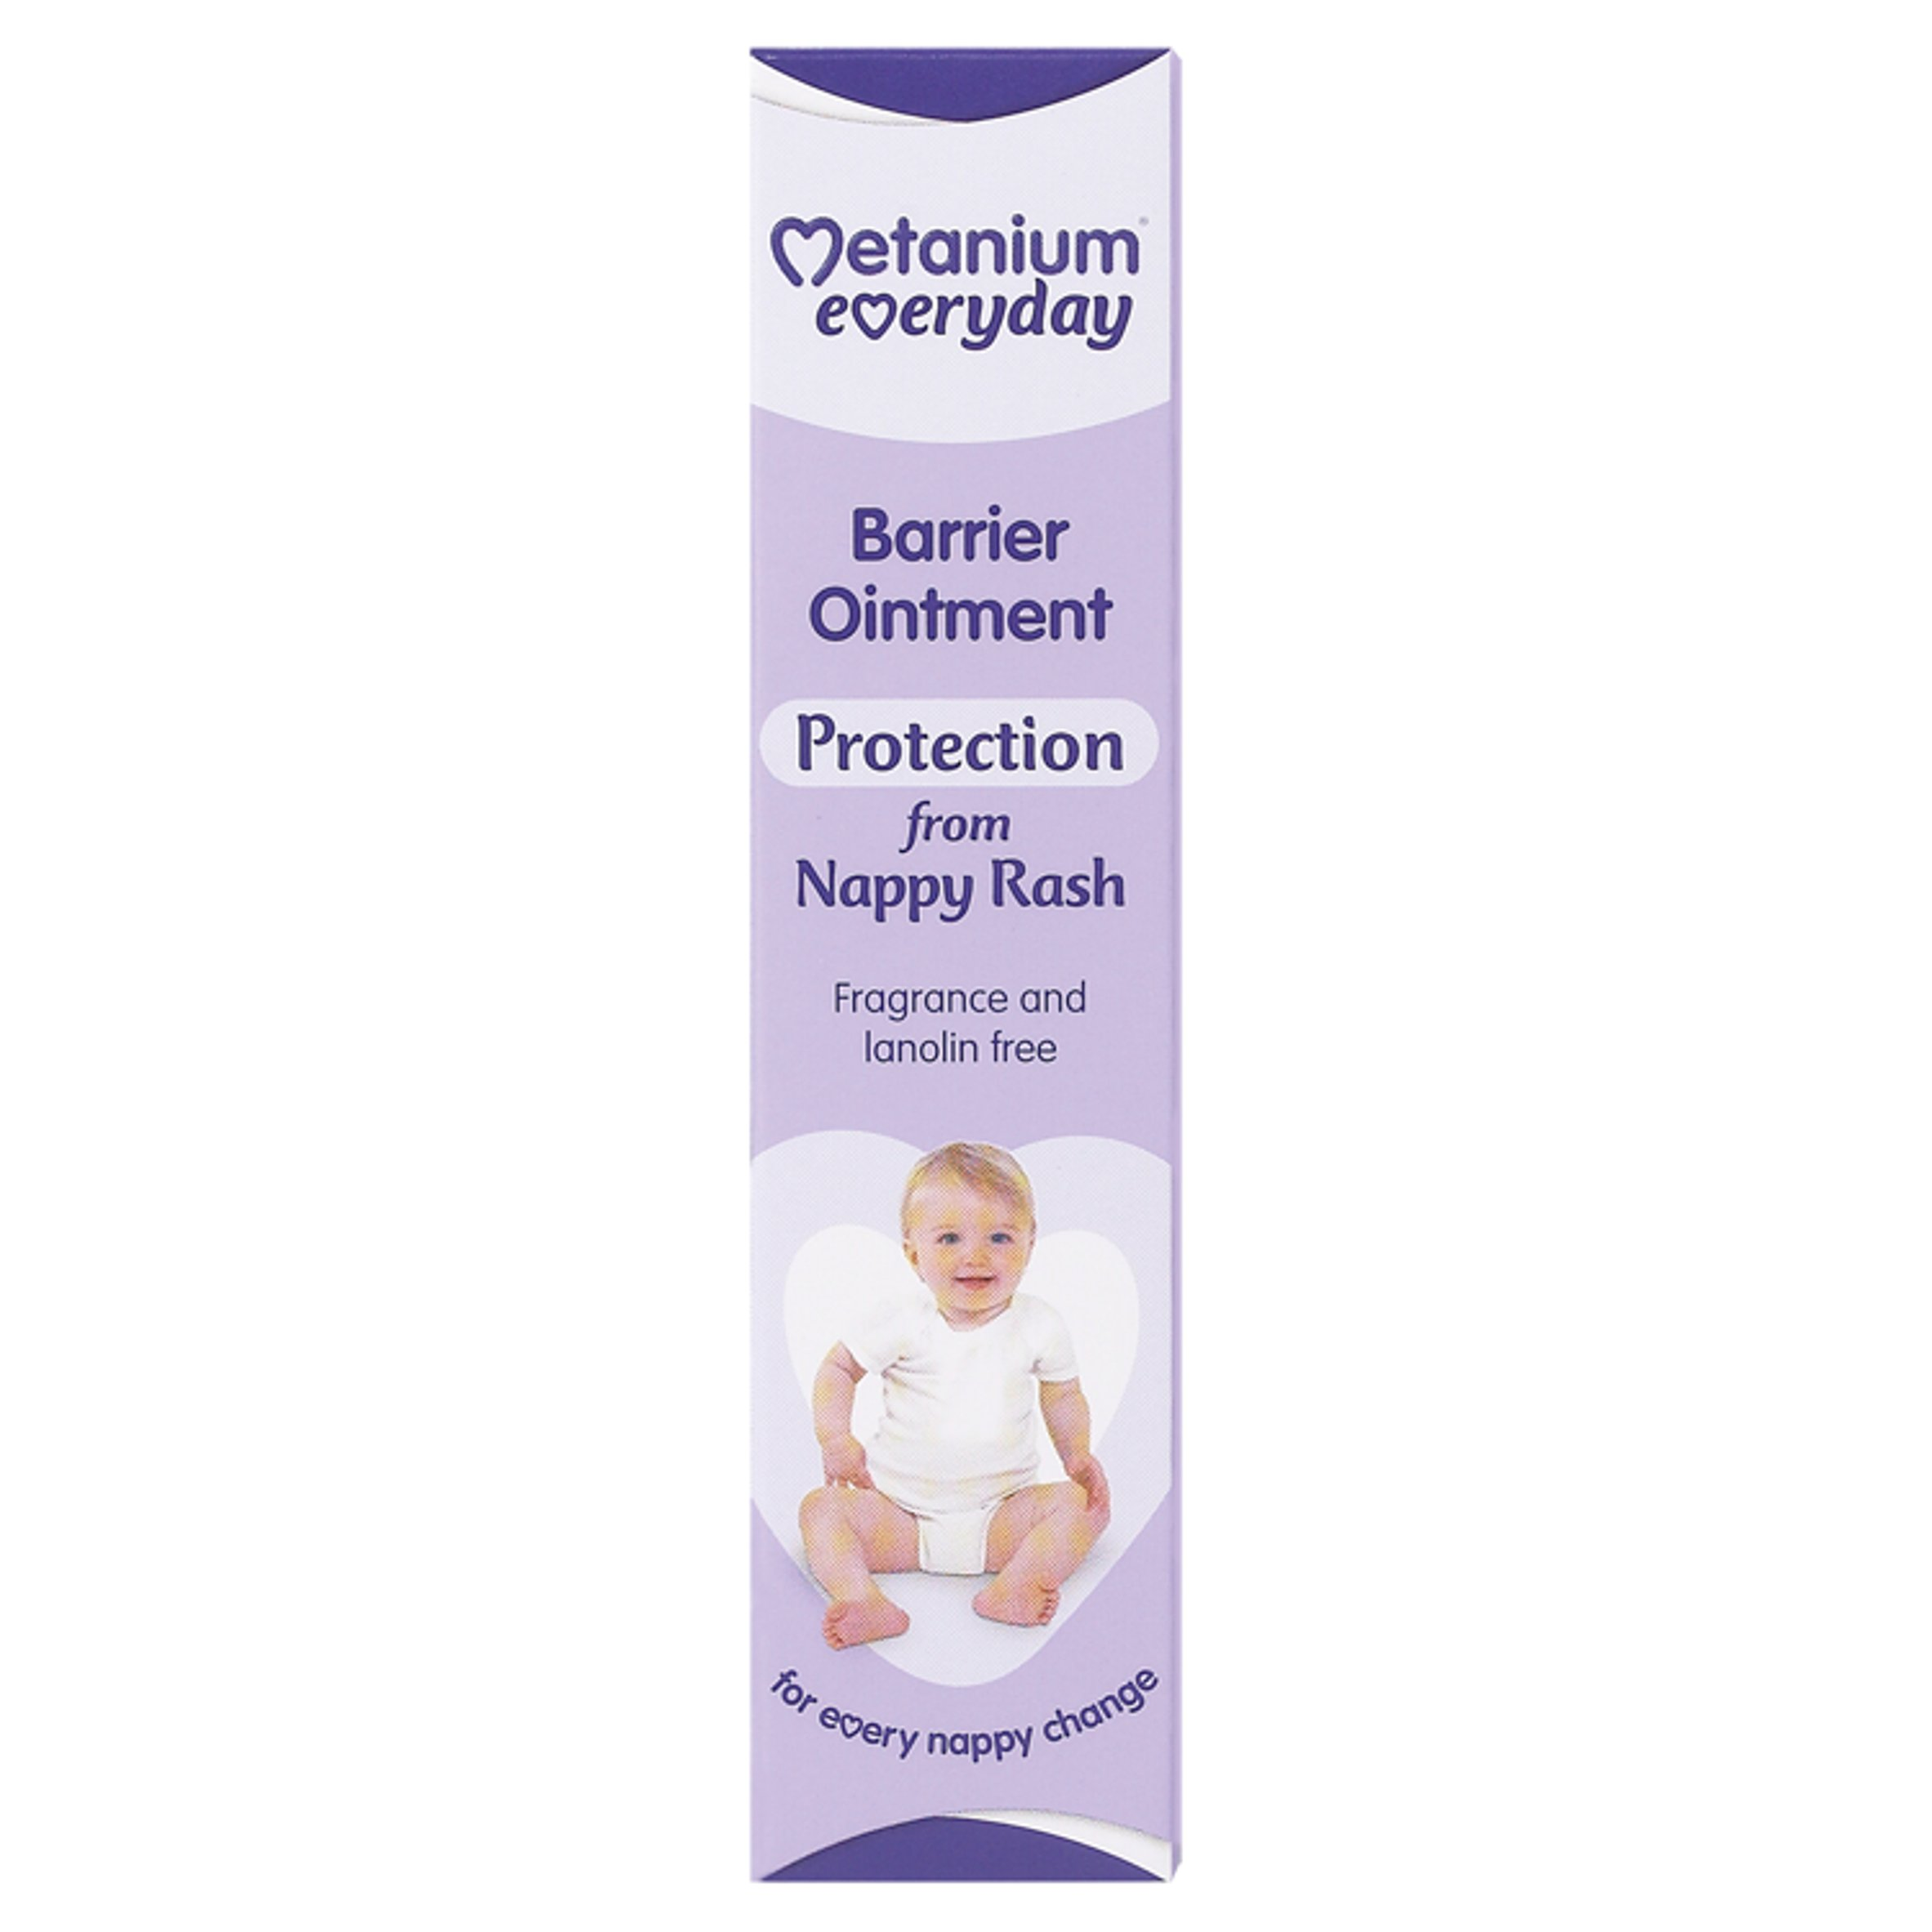 Metanium Everyday Barrier Ointment 40G